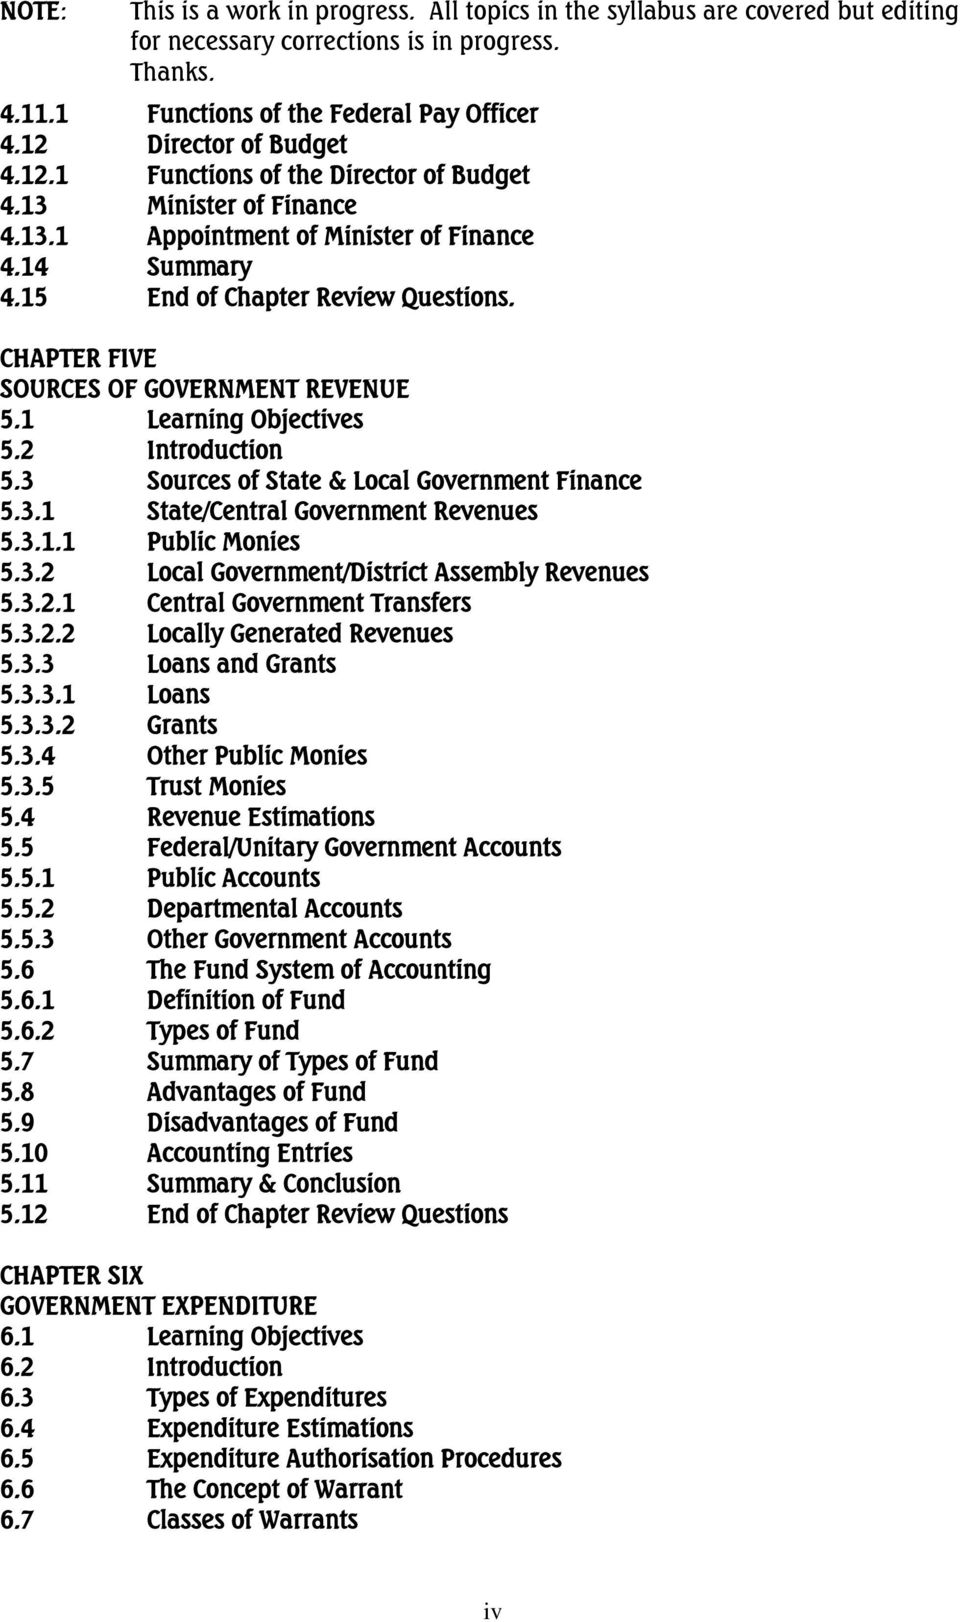 CHAPTER FIVE SOURCES OF GOVERNMENT REVENUE 5.1 Learning Objectives 5.2 Introduction 5.3 Sources of State & Local Government Finance 5.3.1 State/Central Government Revenues 5.3.1.1 Public Monies 5.3.2 Local Government/District Assembly Revenues 5.